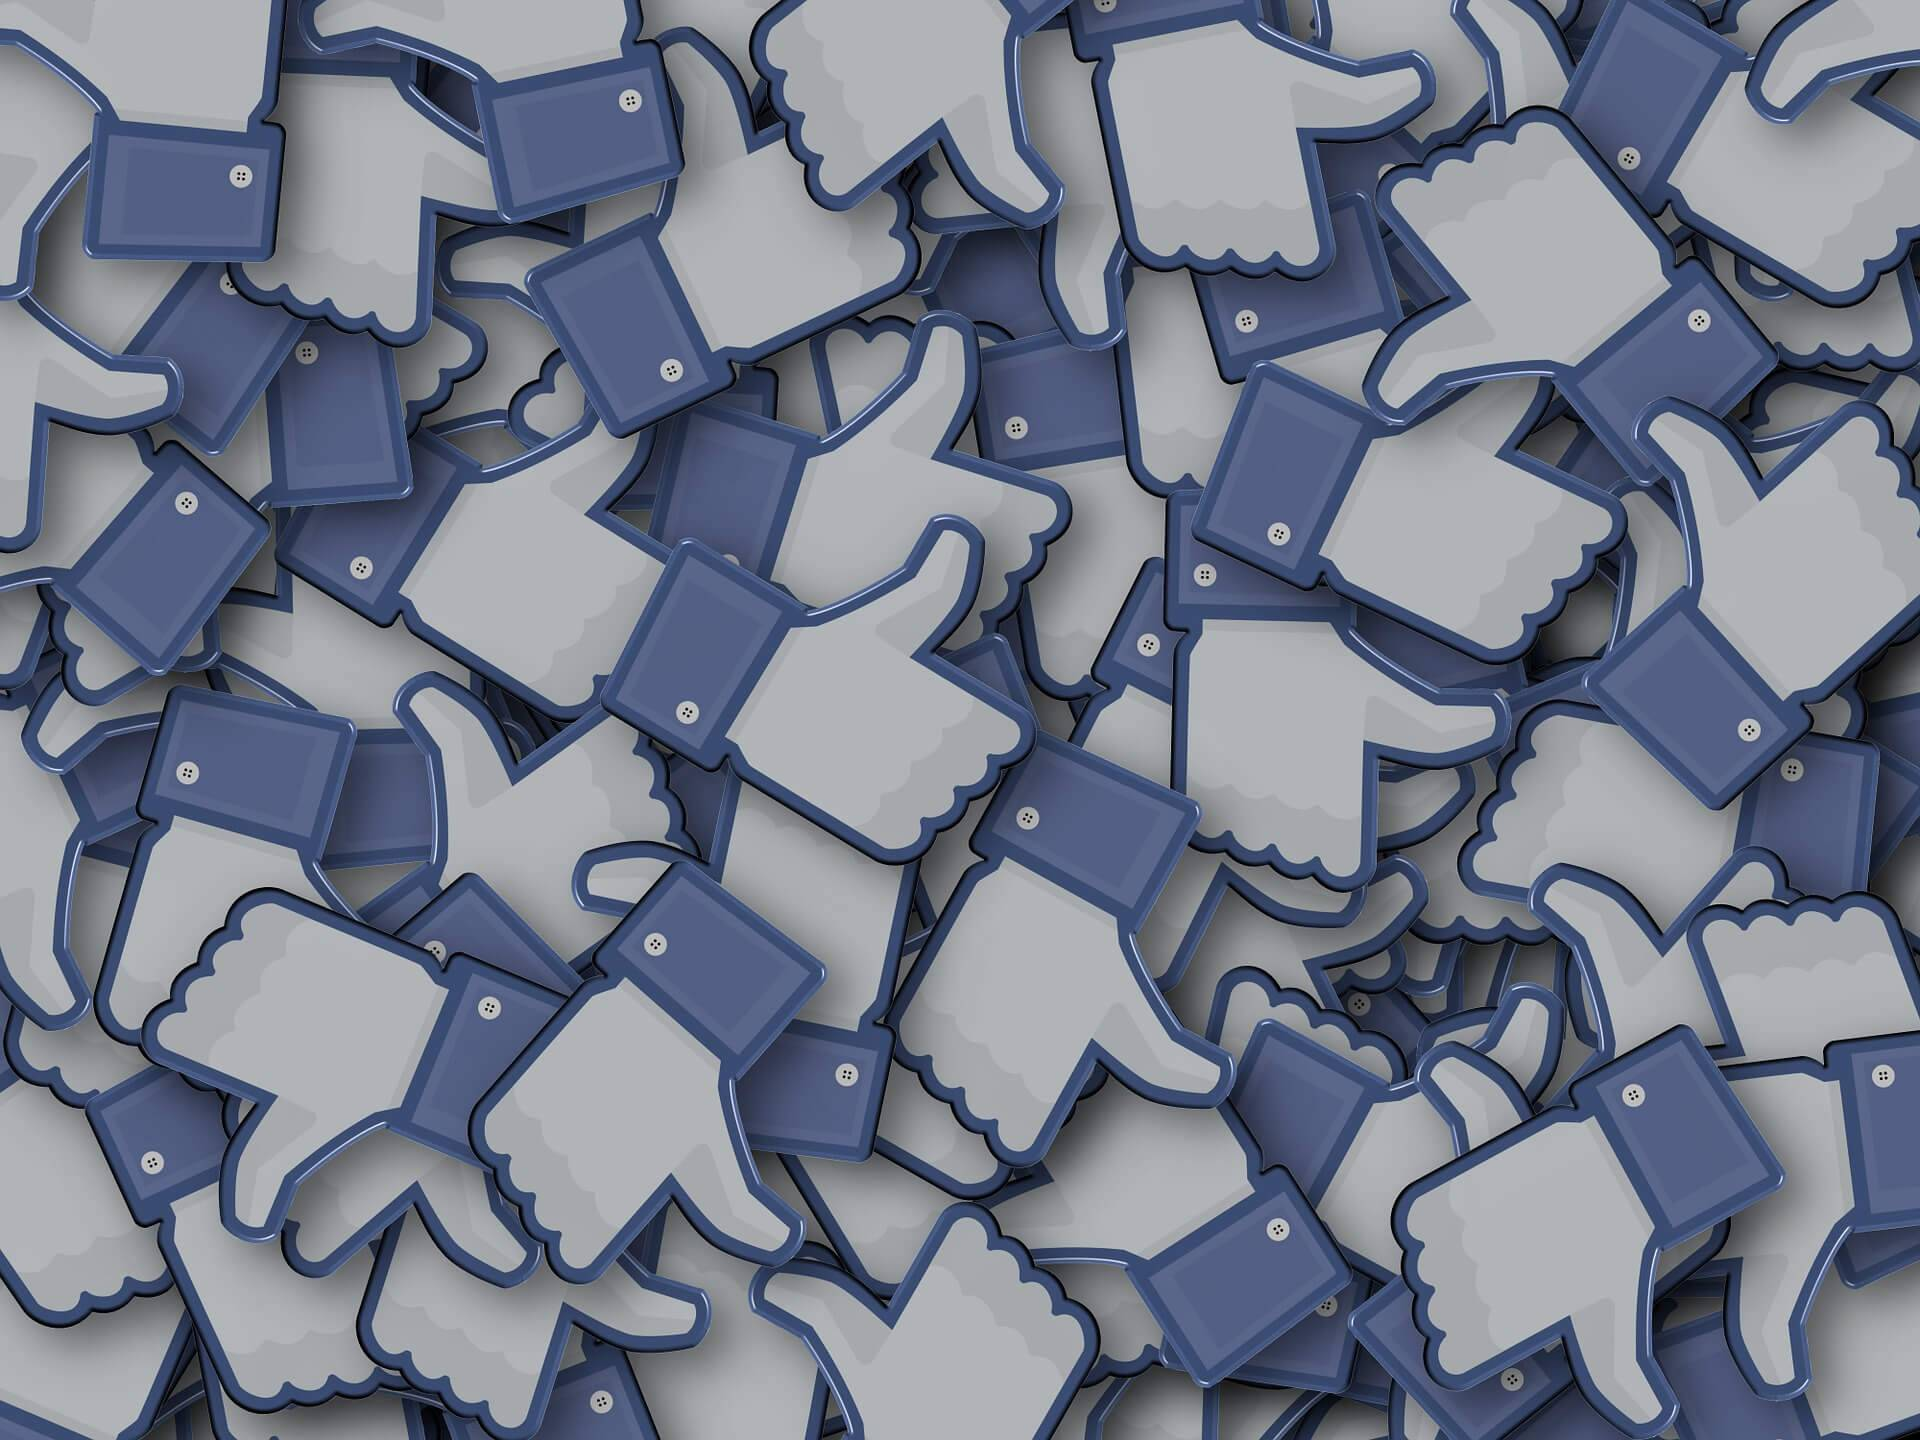 Can Quitting Facebook Make You Happier?